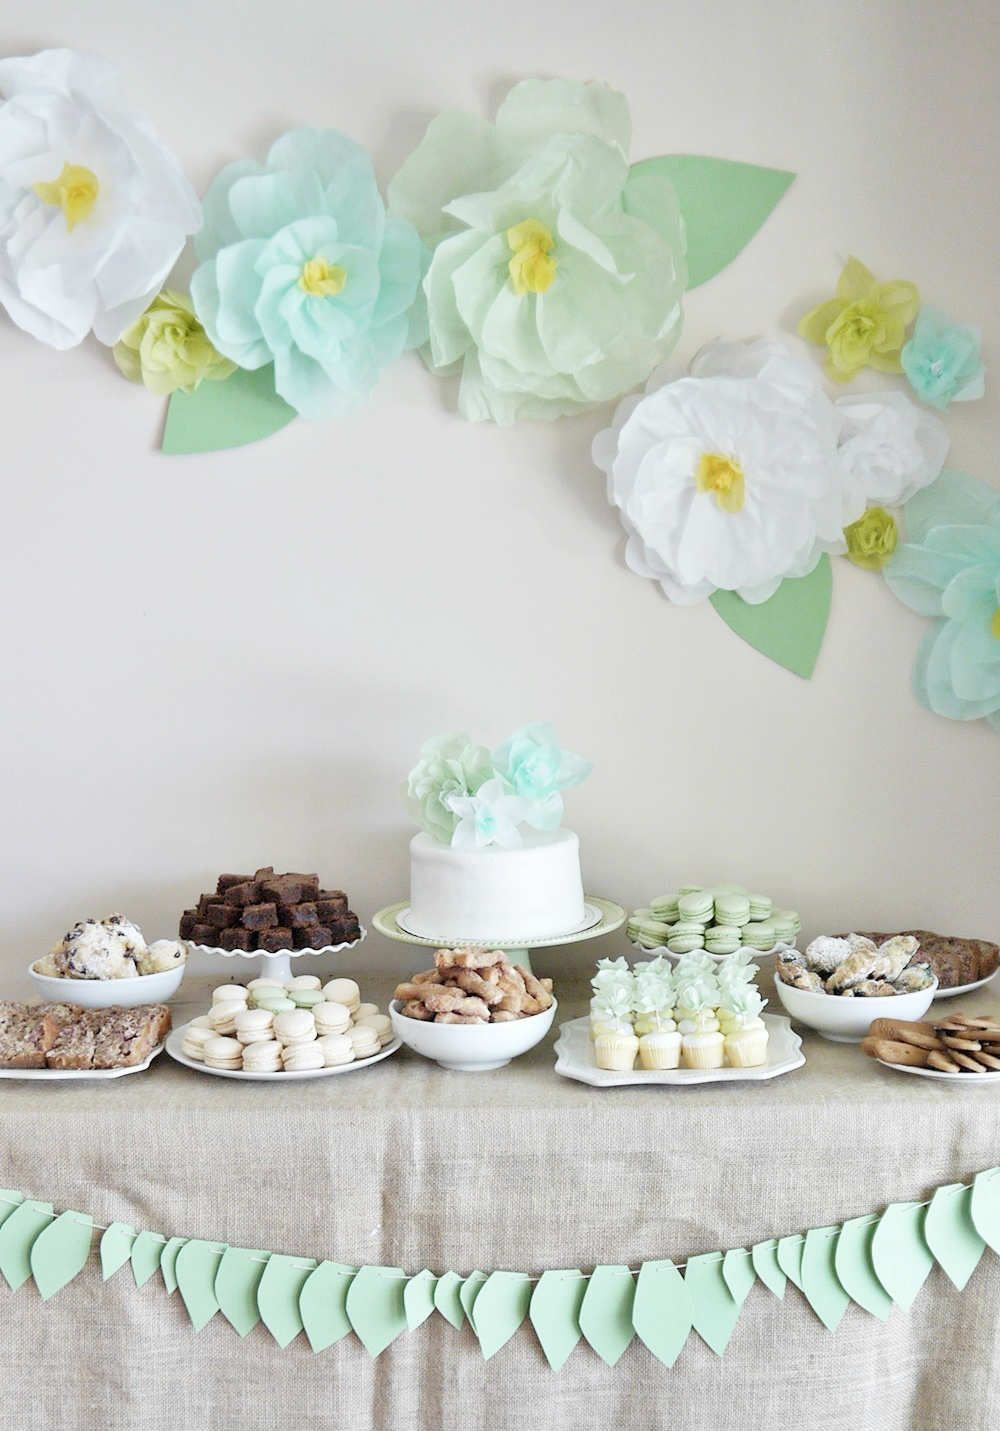 Garden baby shower decor - Garden Tea Party In Mint 10 Delightful Dessert Table Ideas Tinyme Blog